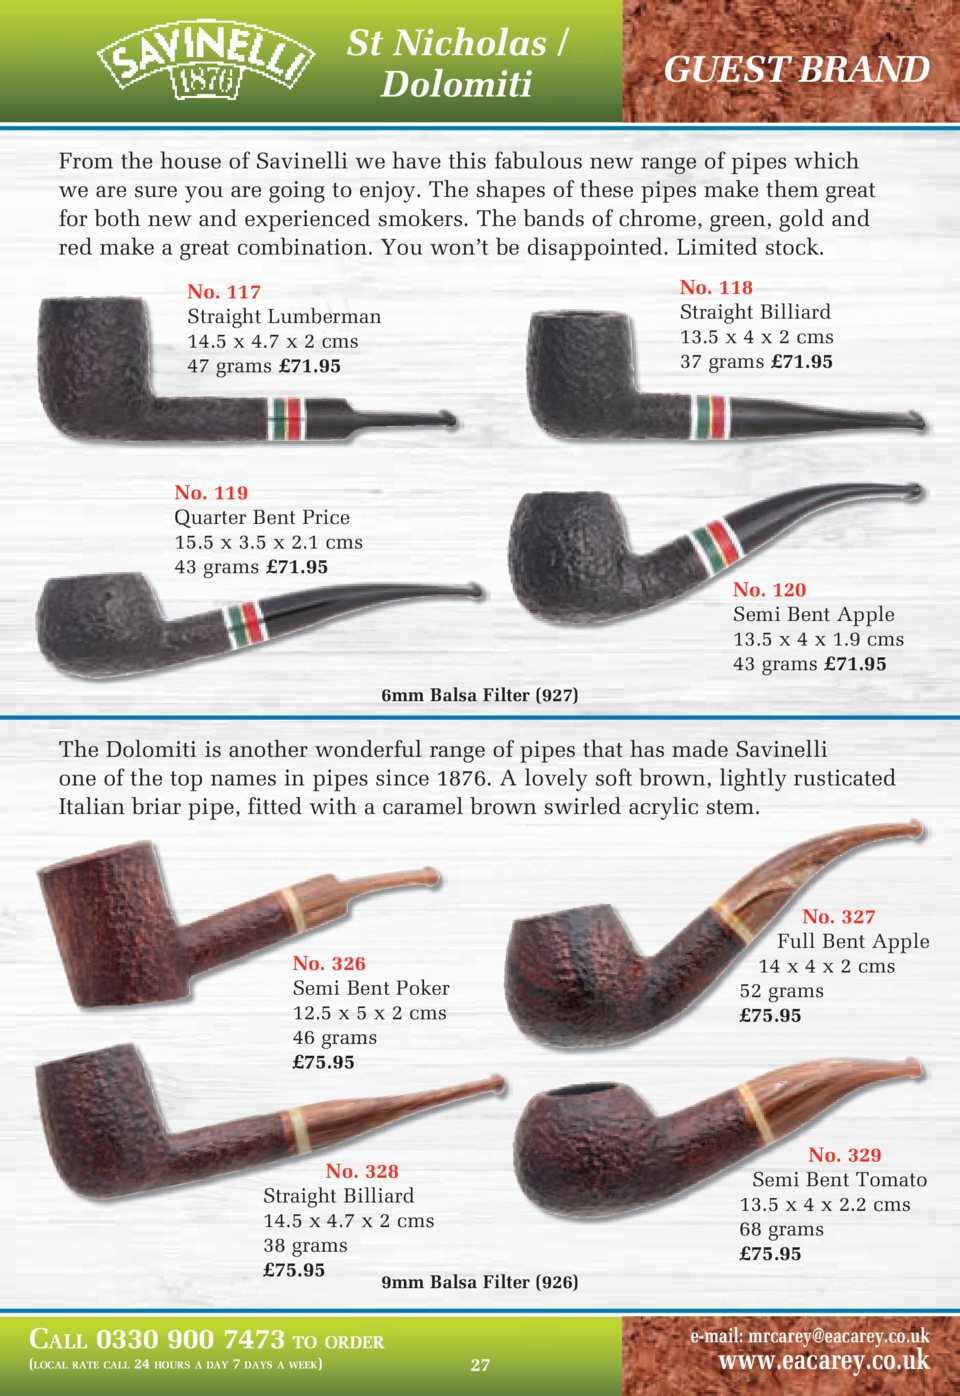 St Nicholas   Dolomiti  GUEST BRAND  From the house of Savinelli we have this fabulous new range of pipes which we are sur...